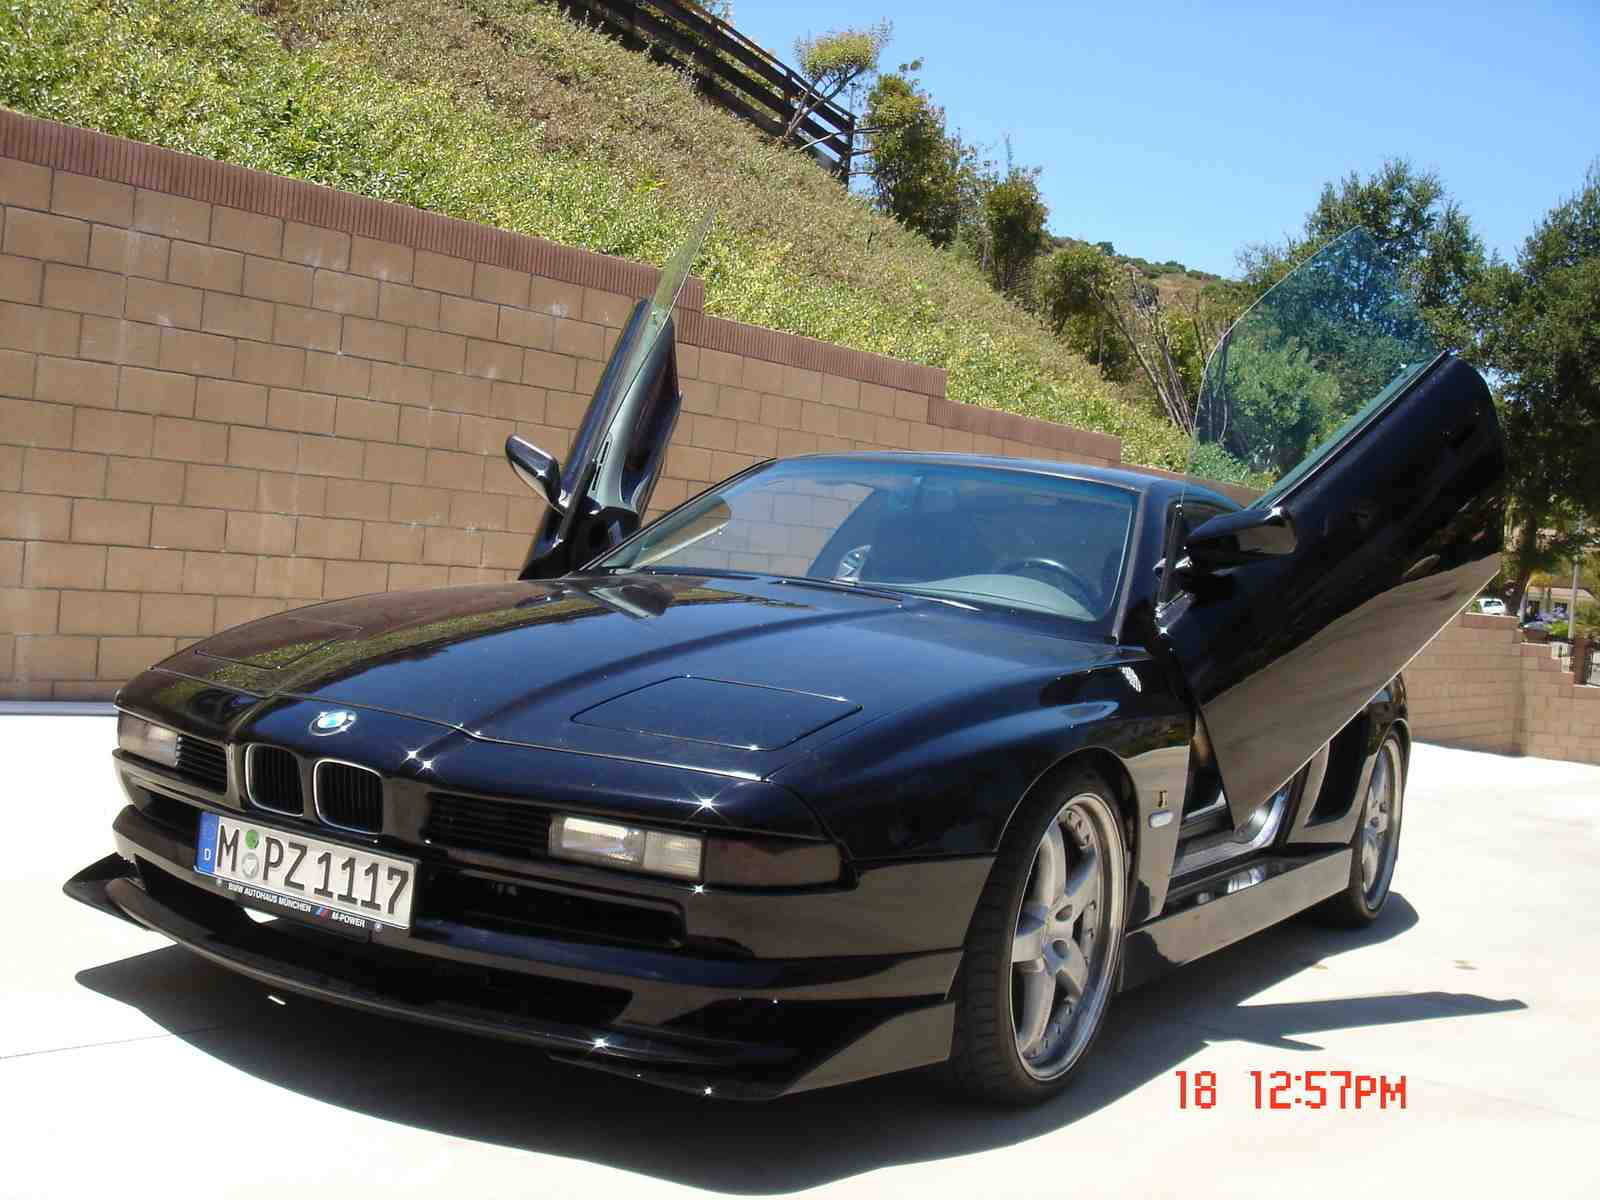 1989 1999 bmw 8 series e31 840ci 850i 850ci 850csi. Black Bedroom Furniture Sets. Home Design Ideas